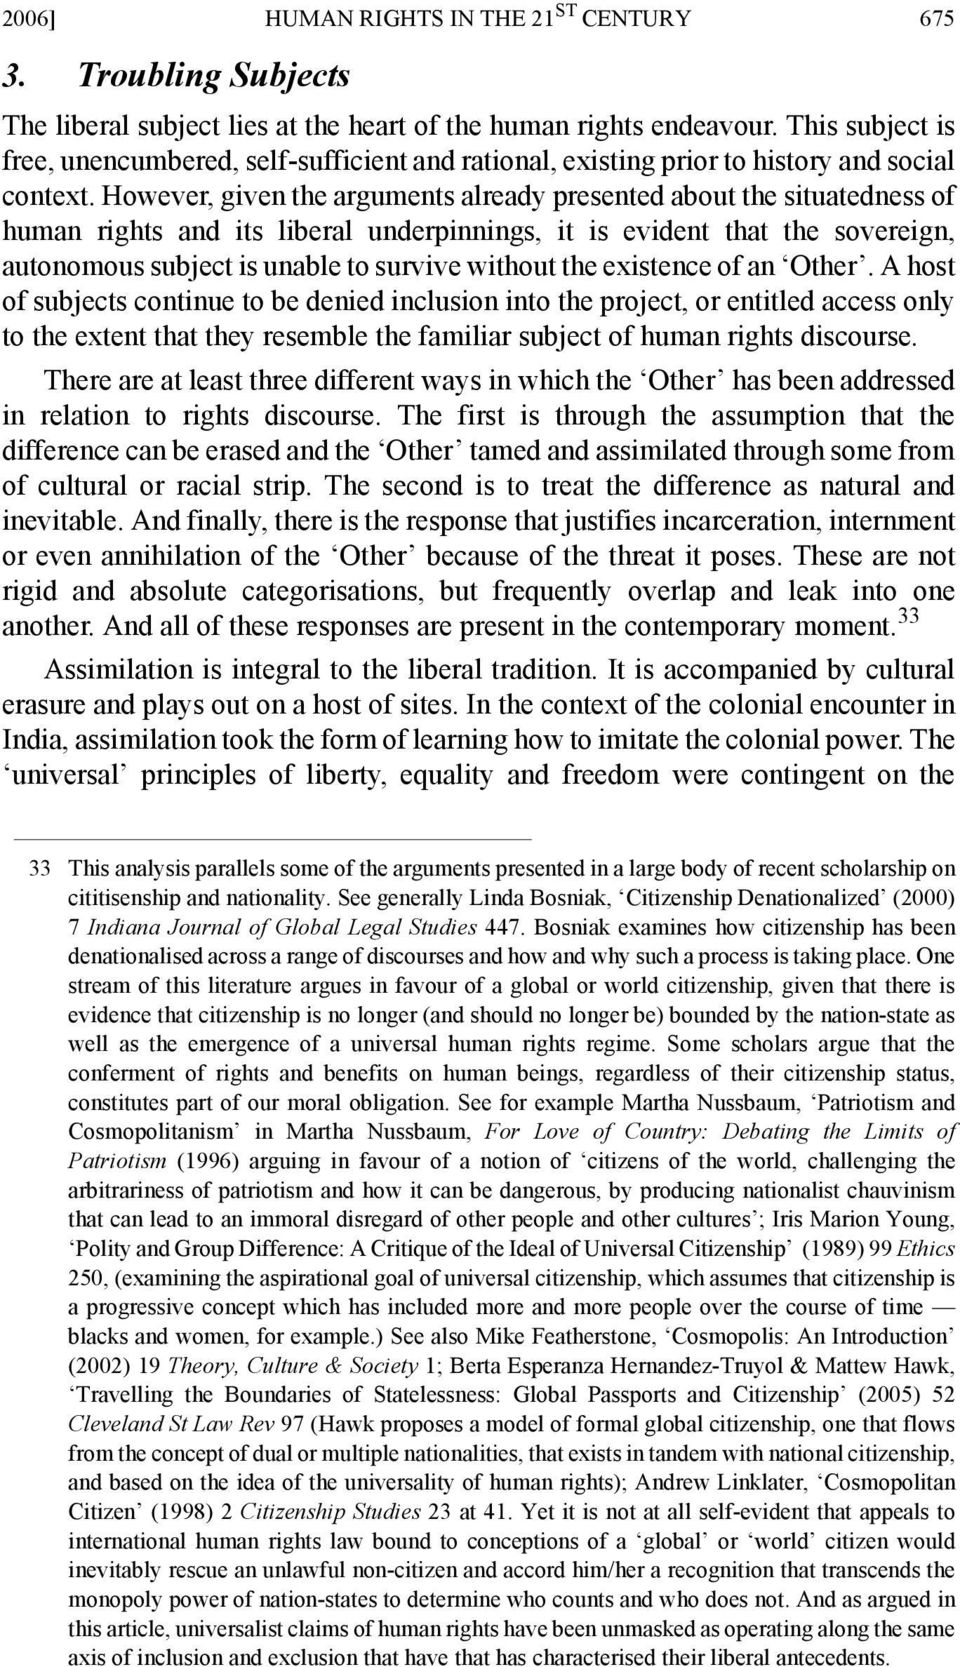 However, given the arguments already presented about the situatedness of human rights and its liberal underpinnings, it is evident that the sovereign, autonomous subject is unable to survive without